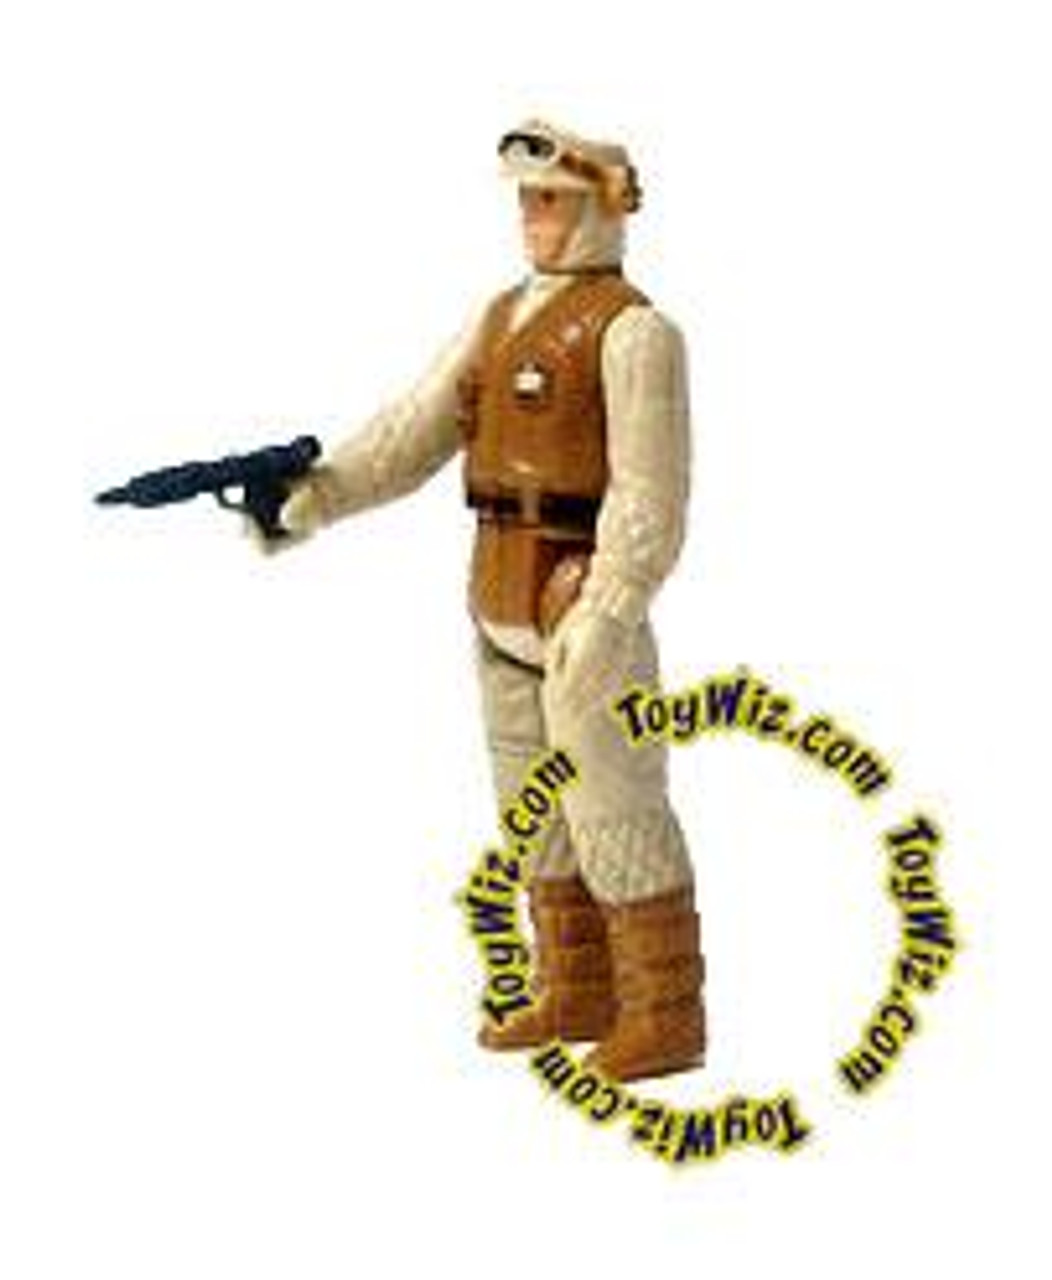 Star Wars Empire Strikes Back Vintage 1980 Hoth Rebel Soldier Action Figure [Loose (No Package)] [C-9 Complete]